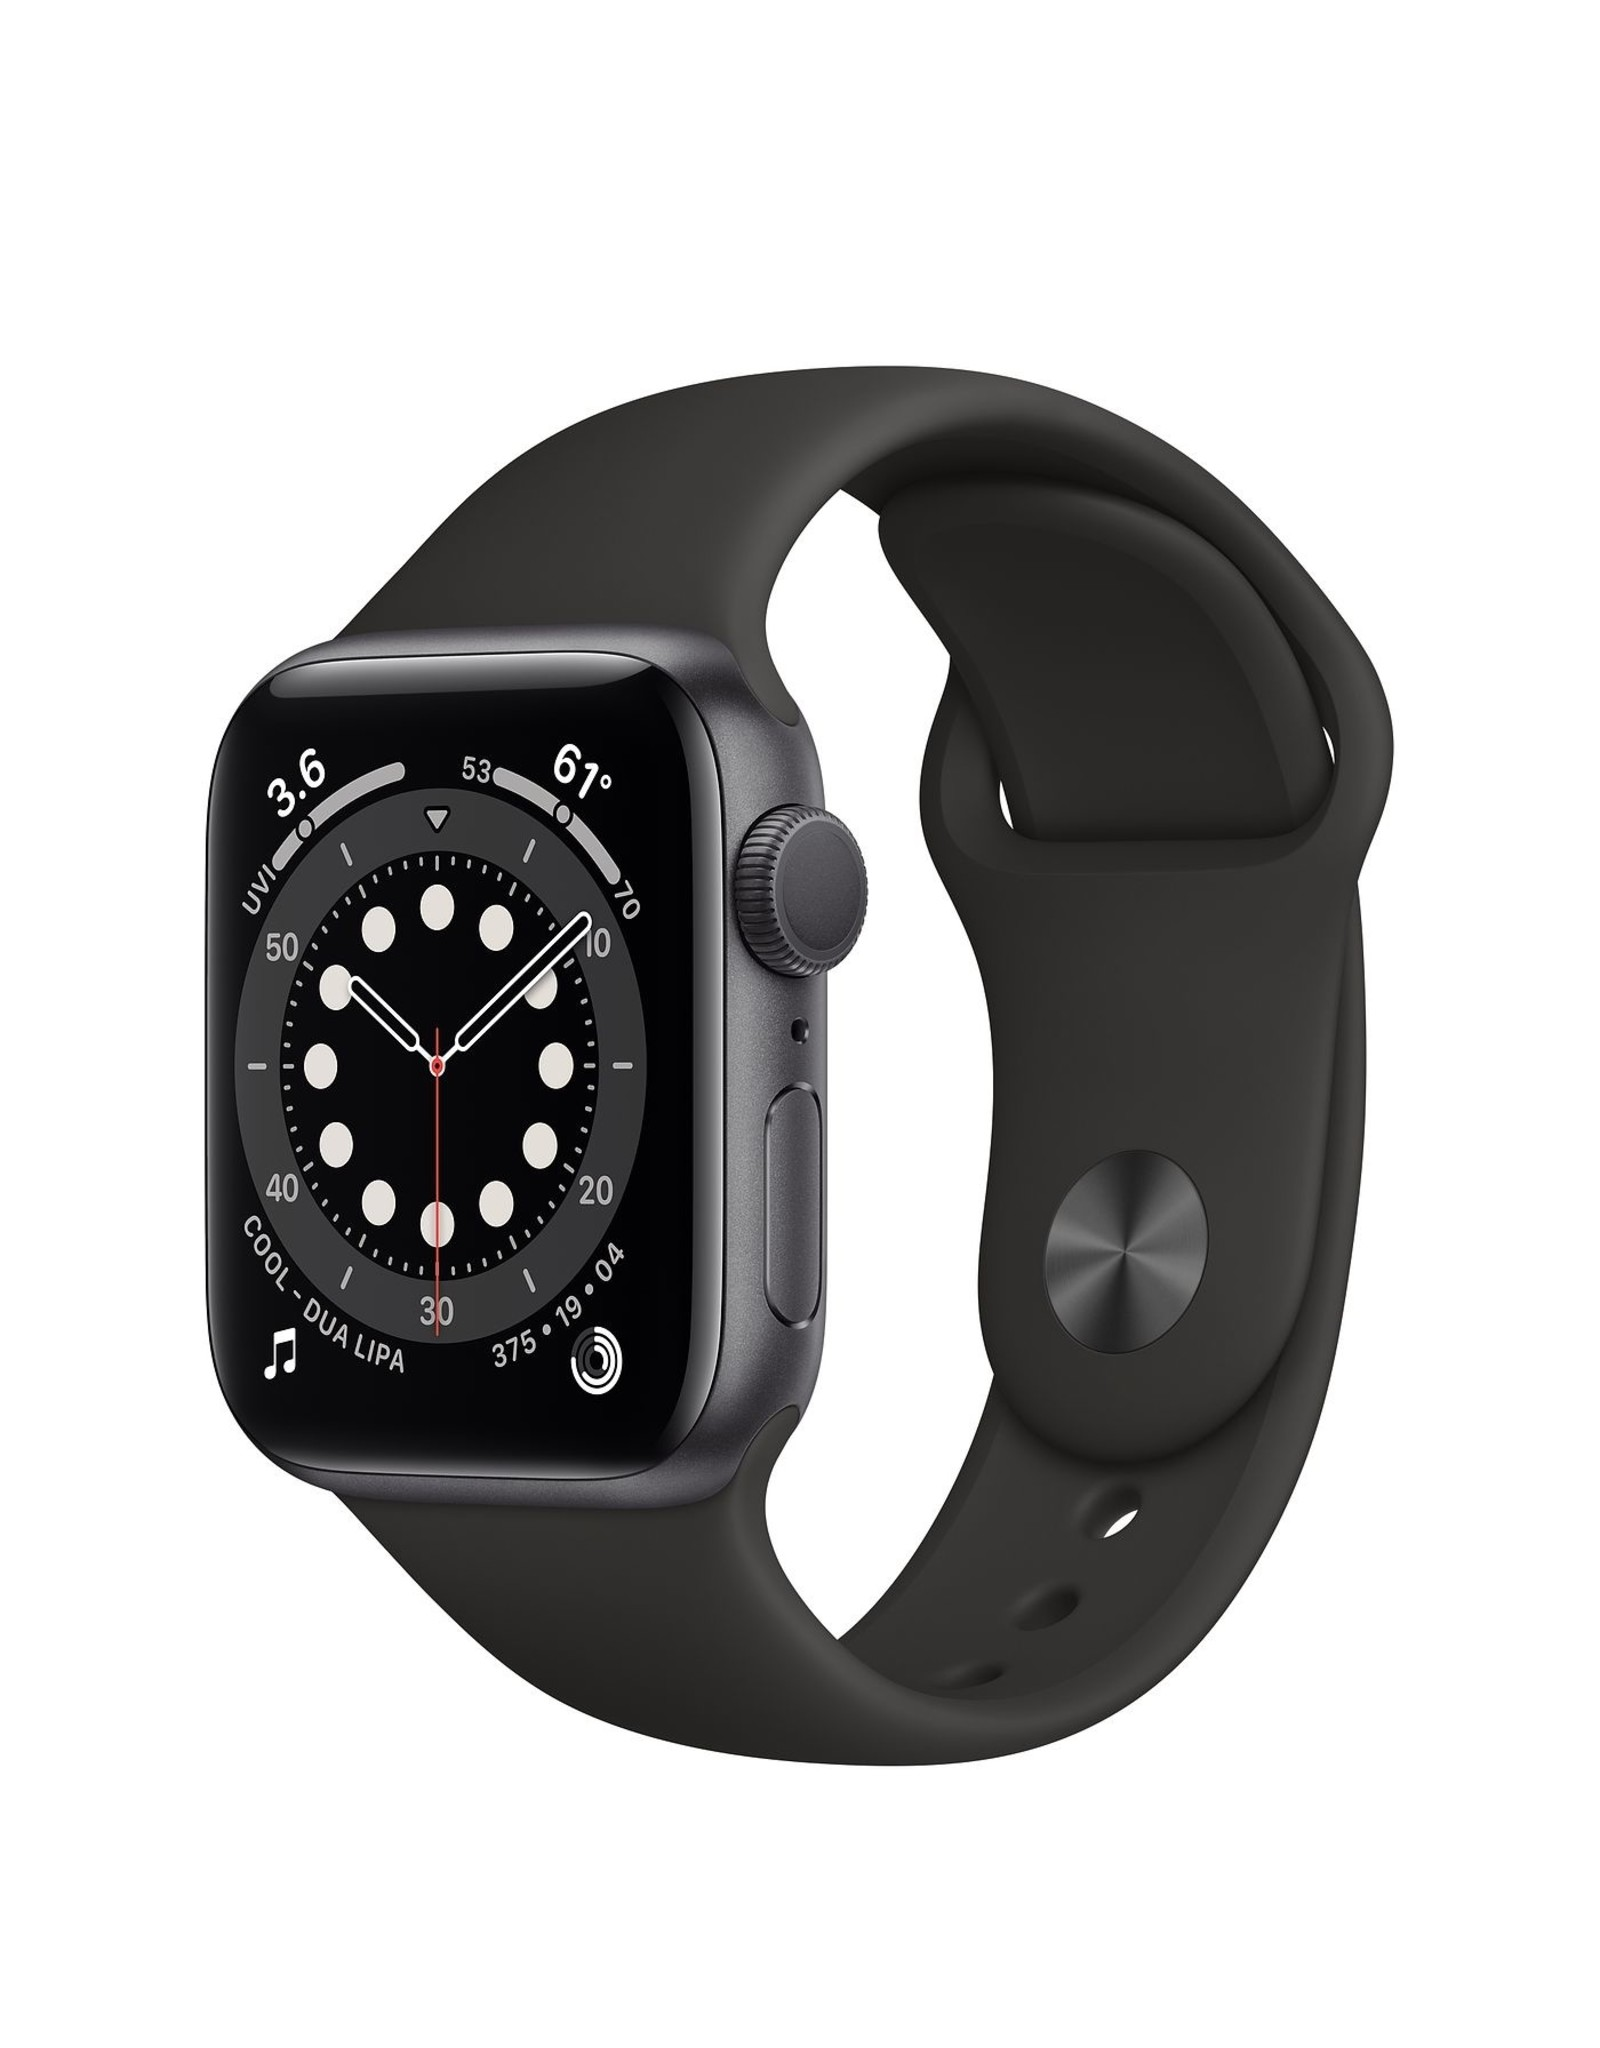 Apple WATCH SERIES 6 GPS + CELL - 44MM SPACE GREY ALM CASE BLACK SPORT BAND